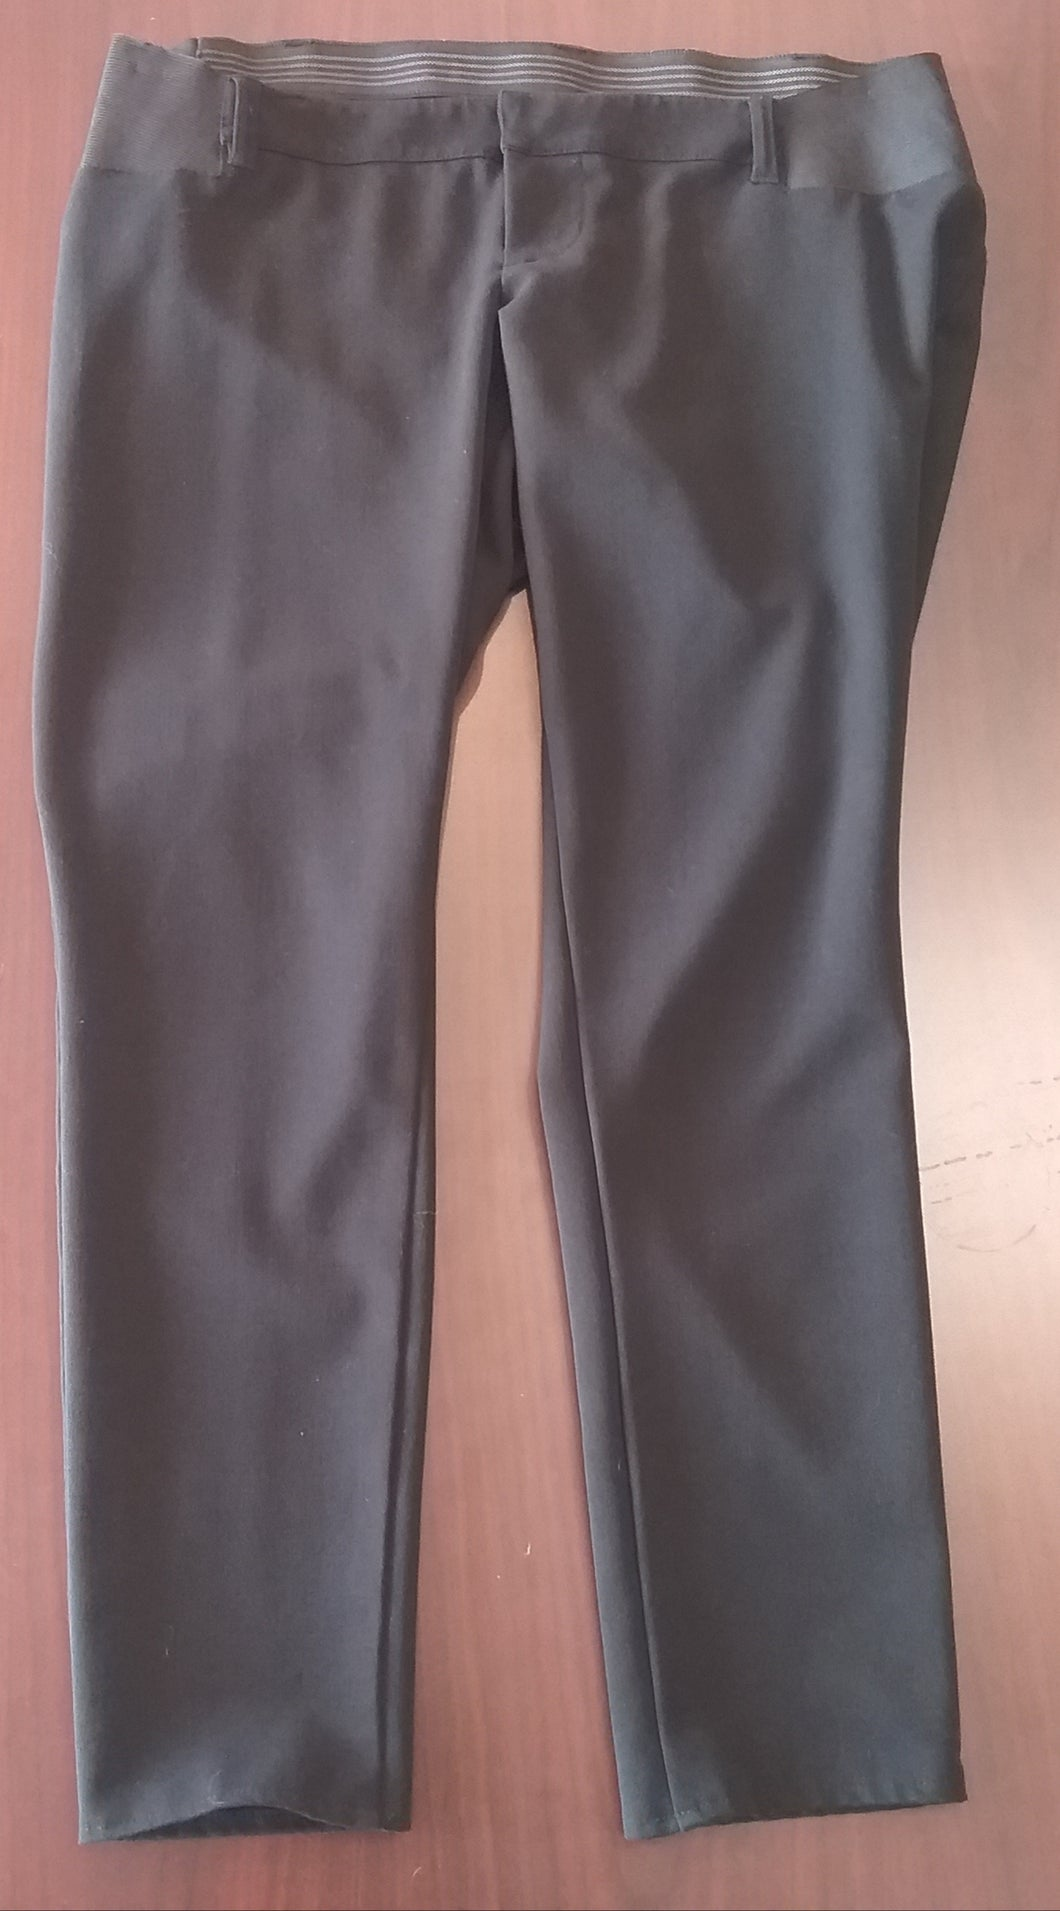 Size 10 Side Panel Black Maternity Capri Pants